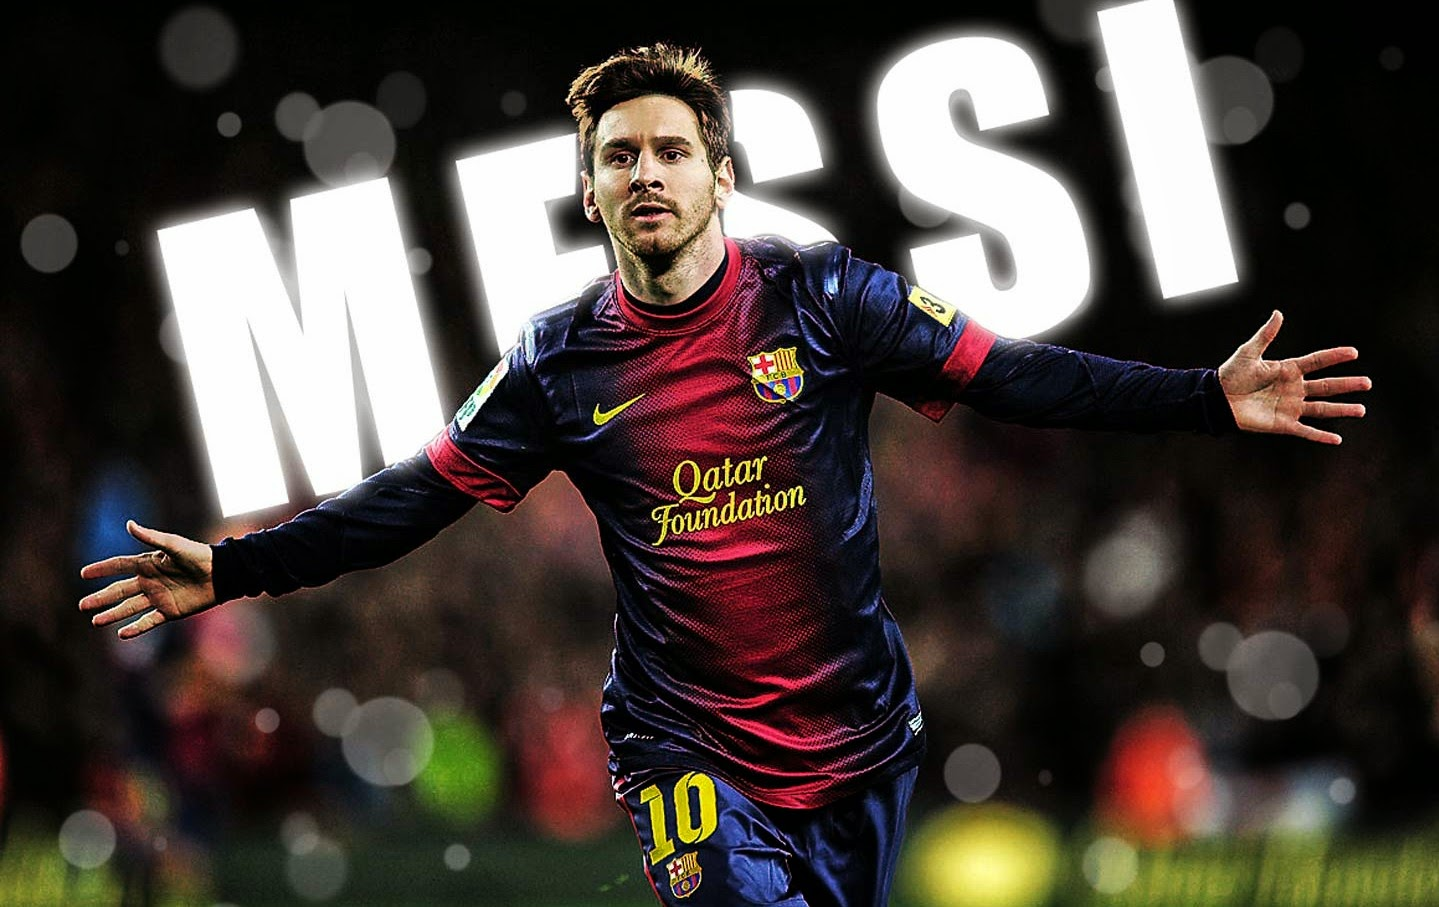 messi wallpapers lionel messi wallpapers download lionel messi 1439x907